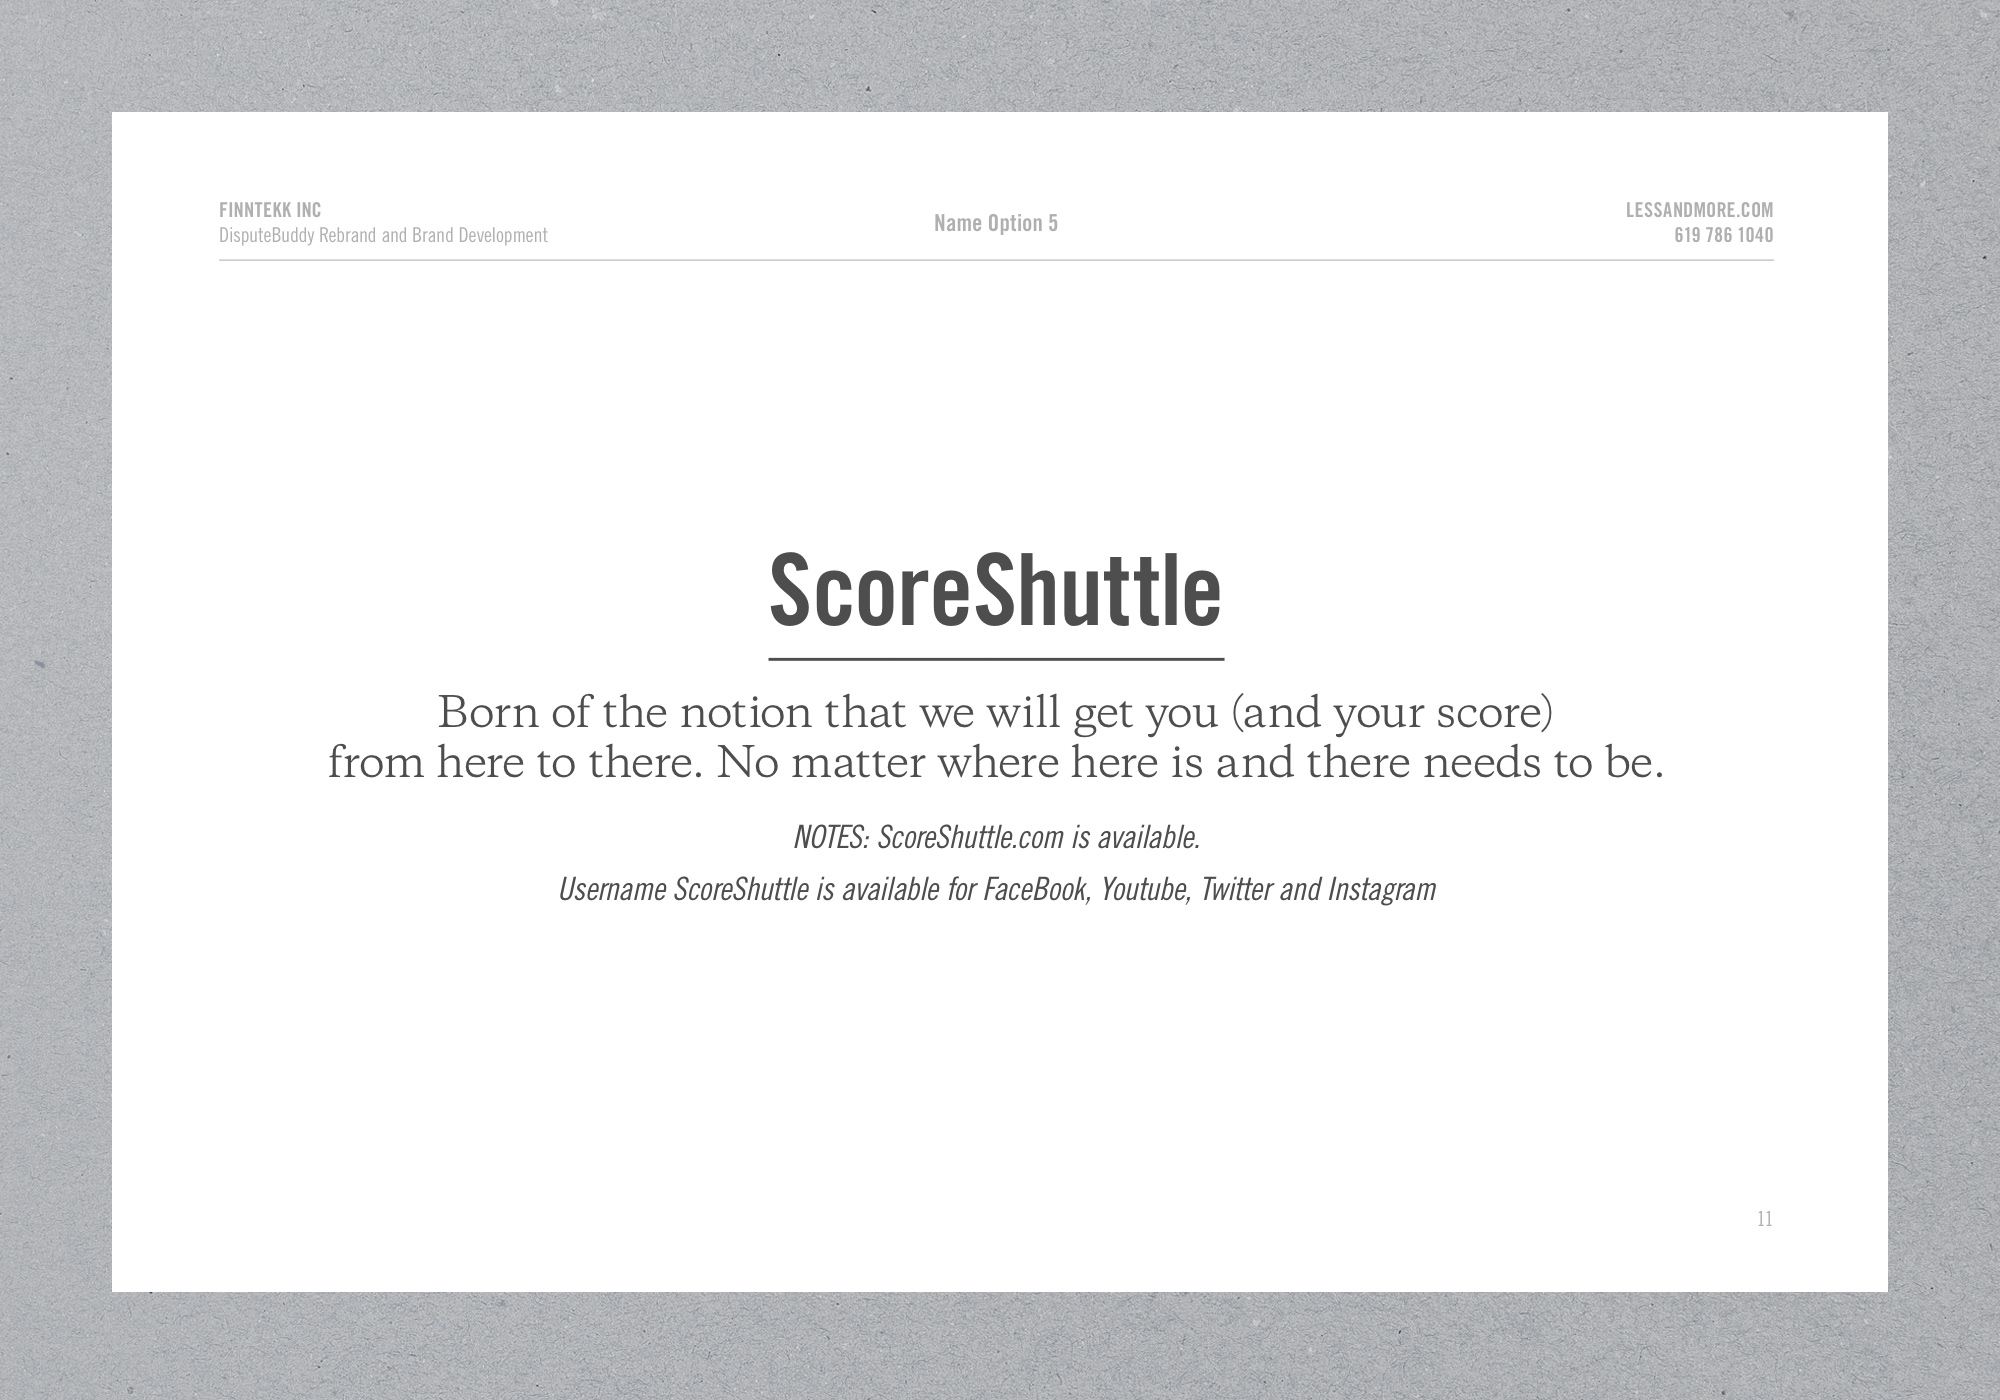 scoreshuttle-brand-naming-process-09